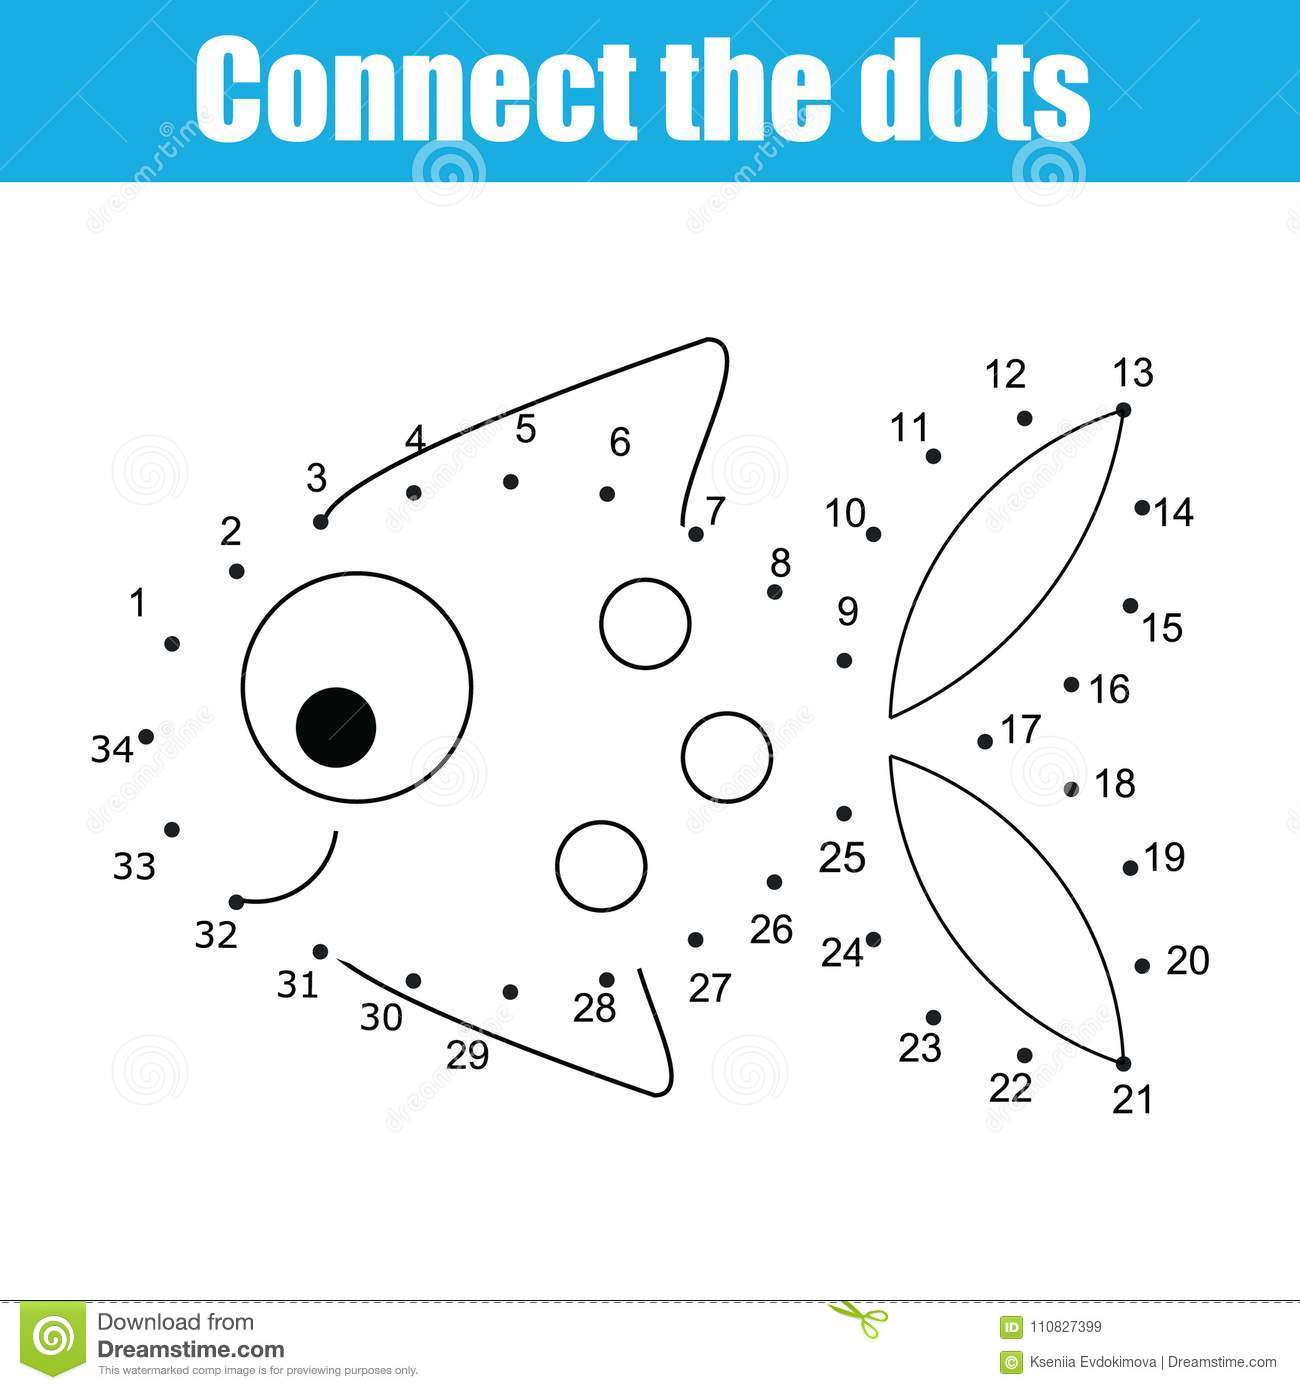 Connect The Dots By Numbers Children Educational Game Printable Worksheet Activity Fish Stock